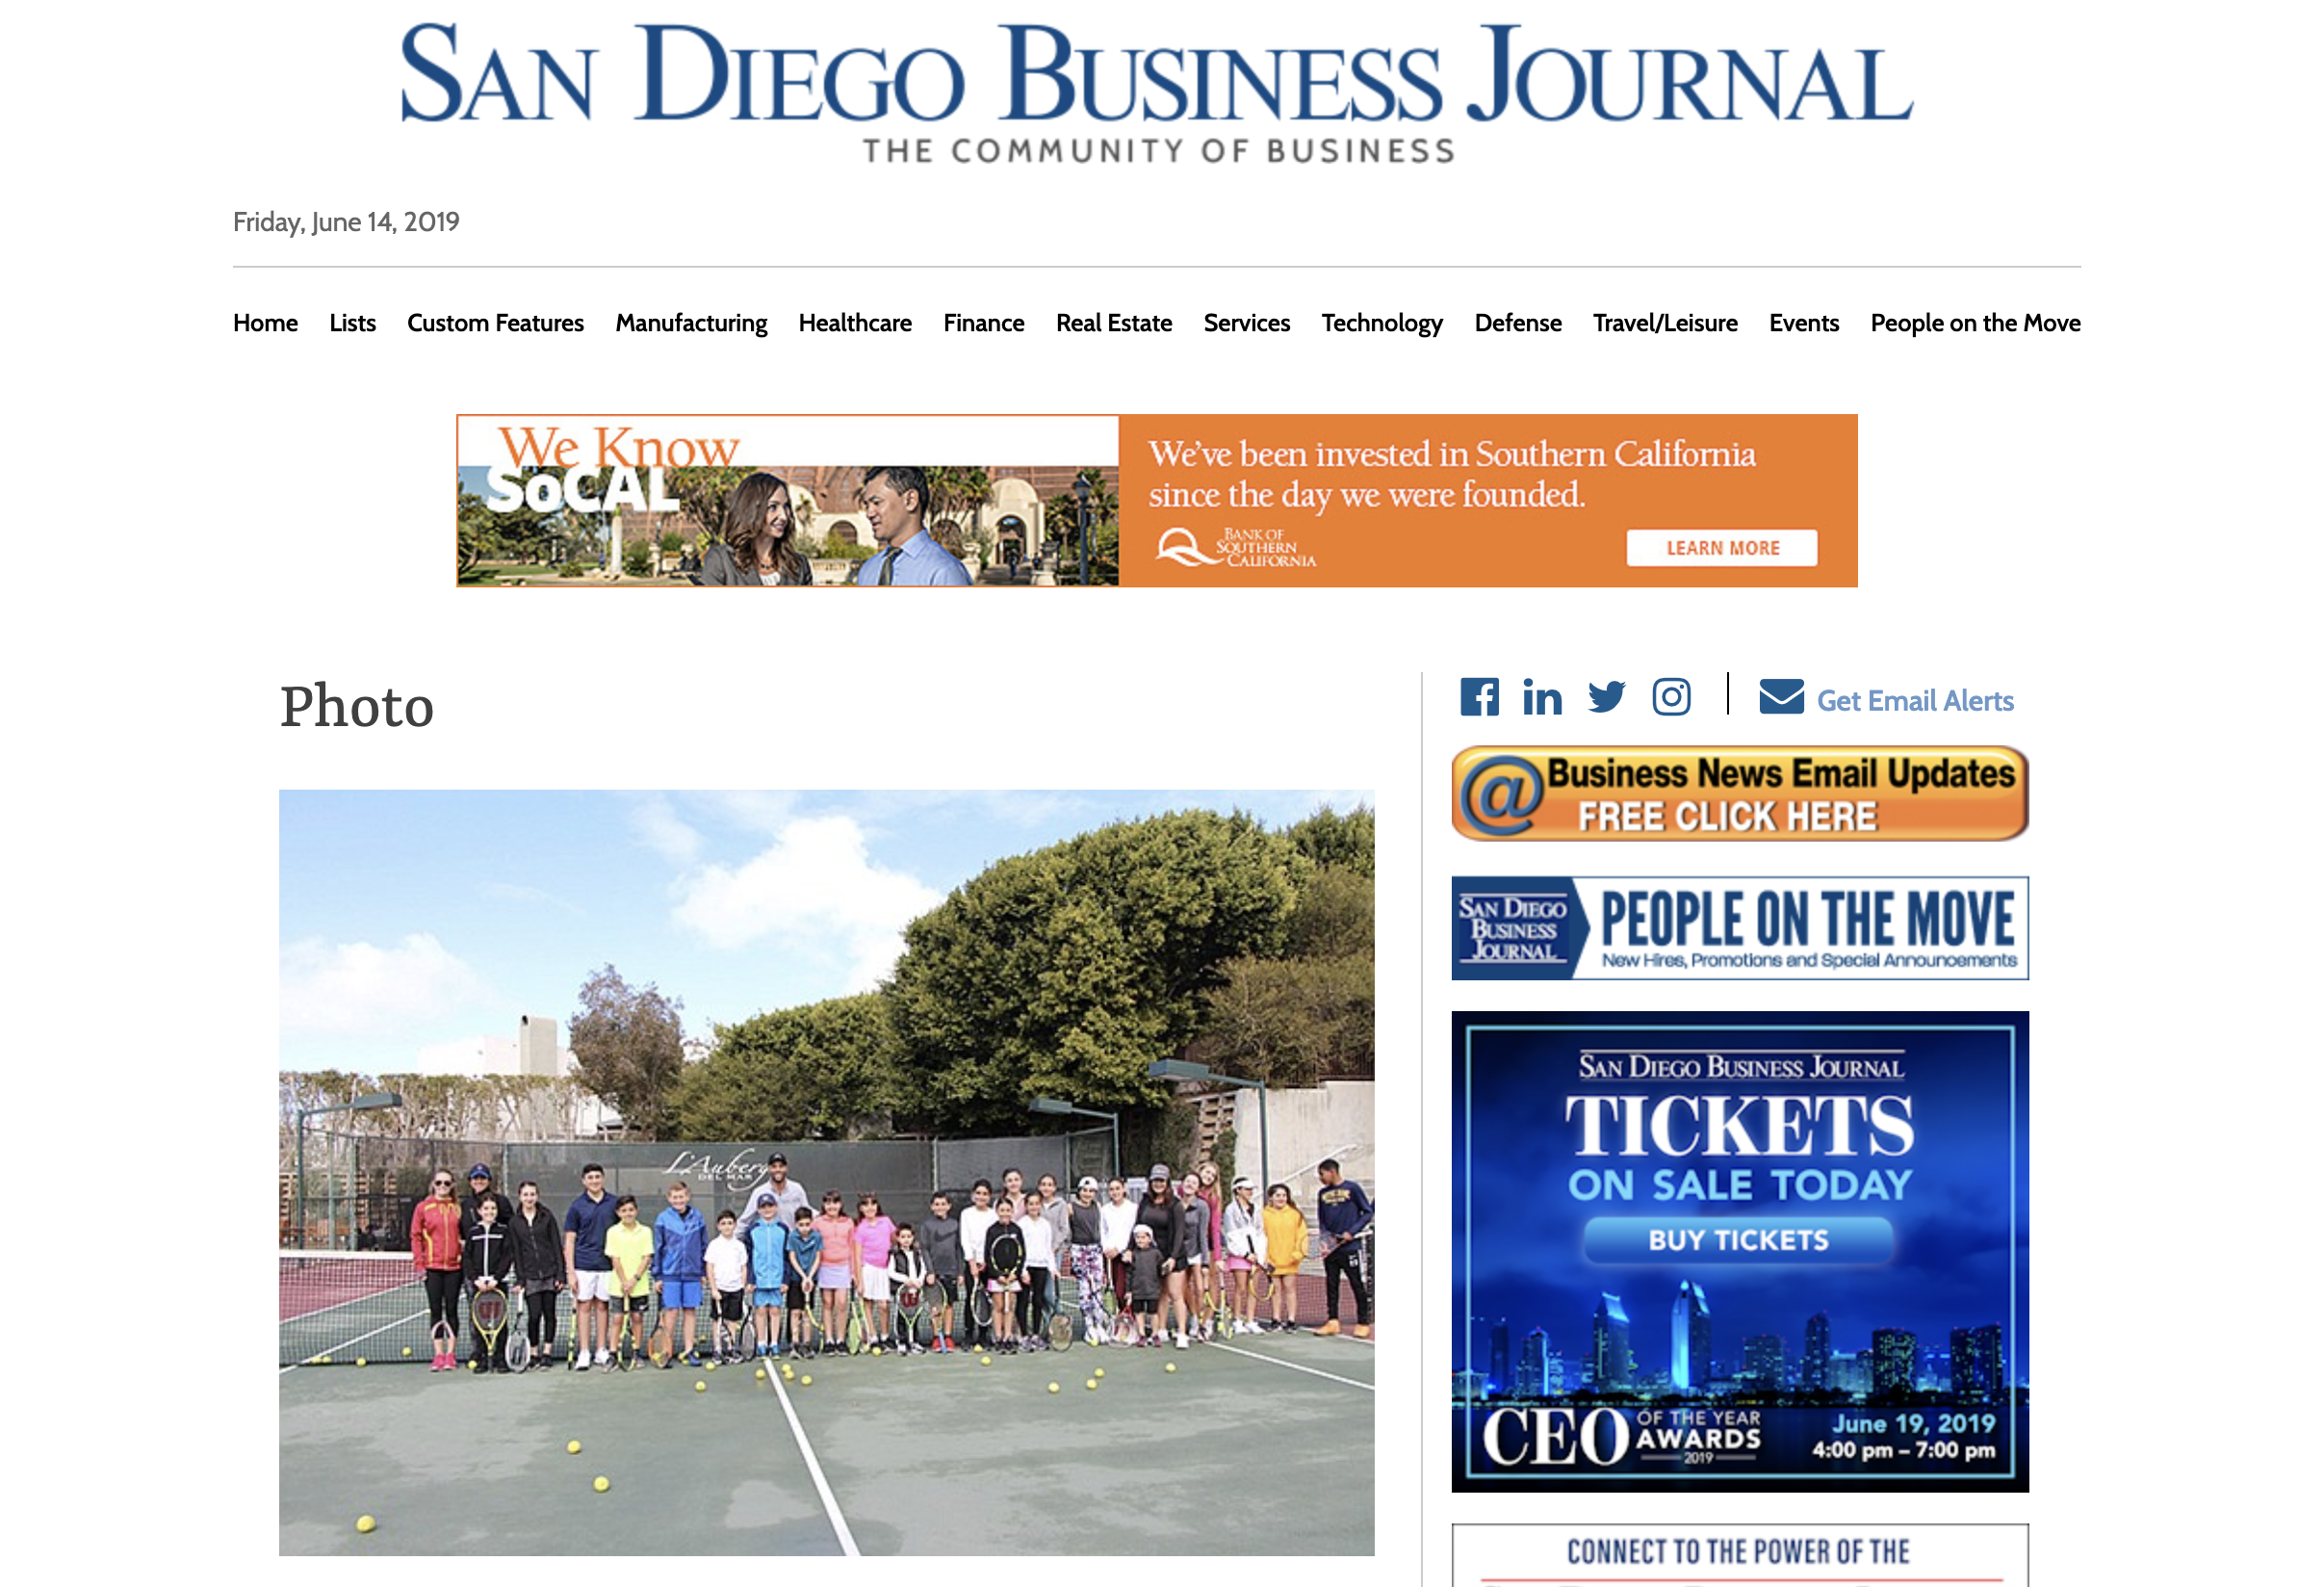 SAn diego business journal feature